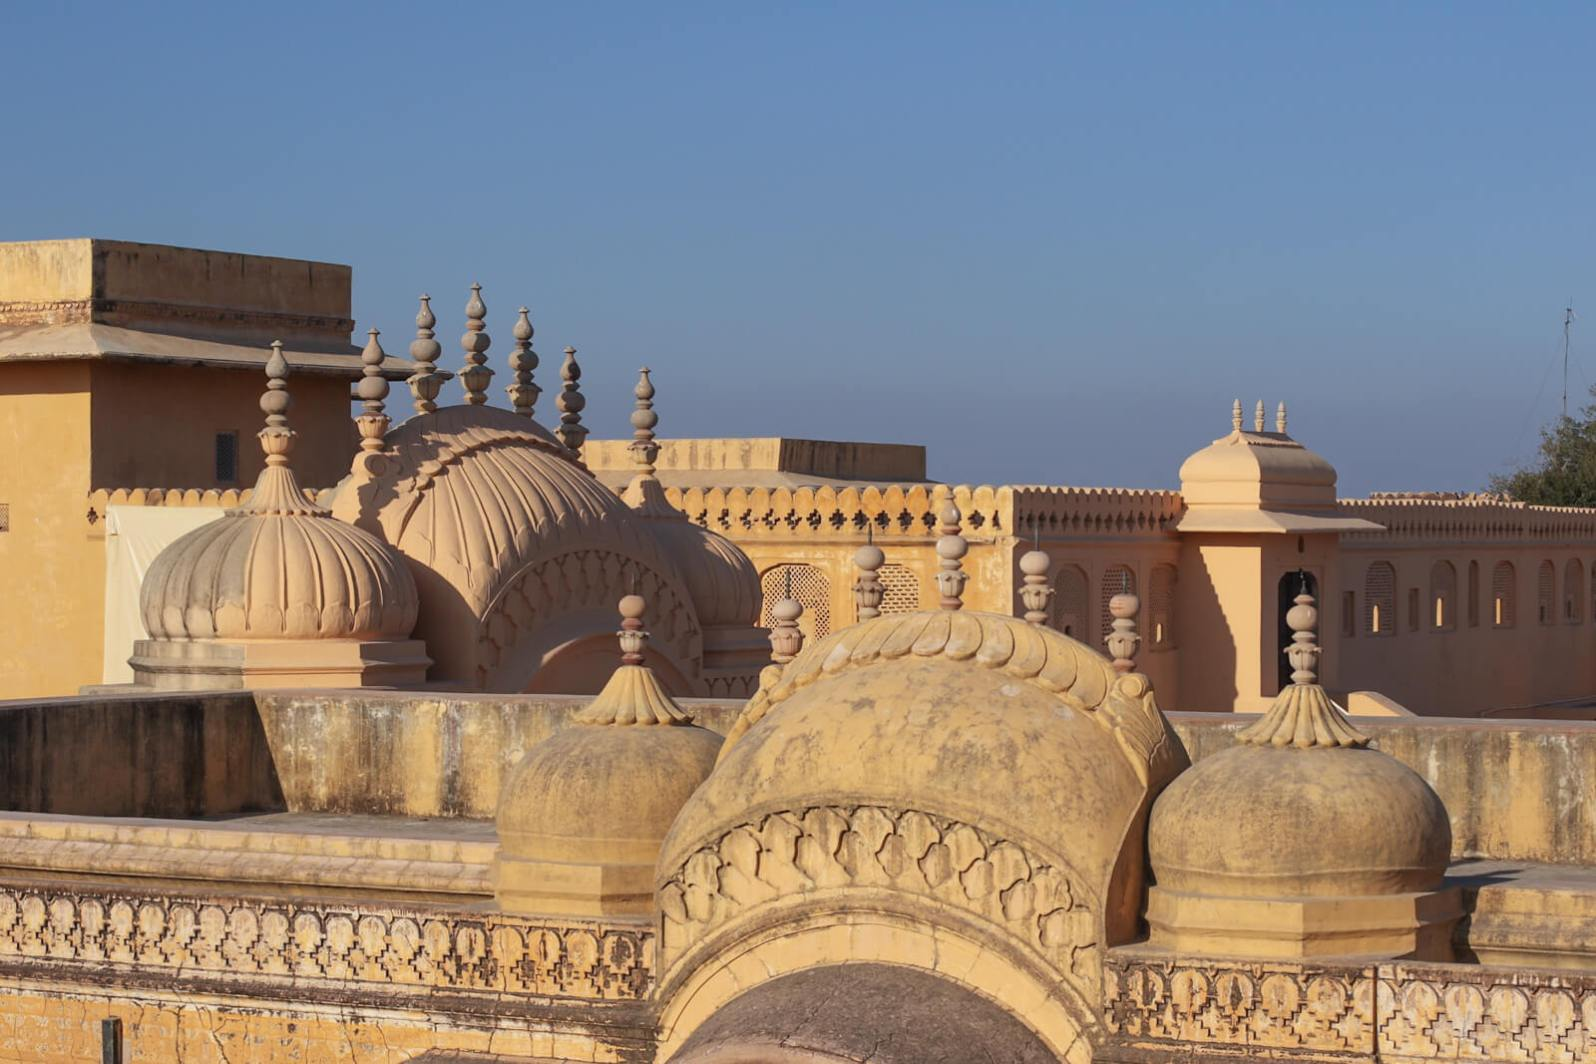 Rooftop of Nahargarh Fort in Jaipur, Rajasthan, India